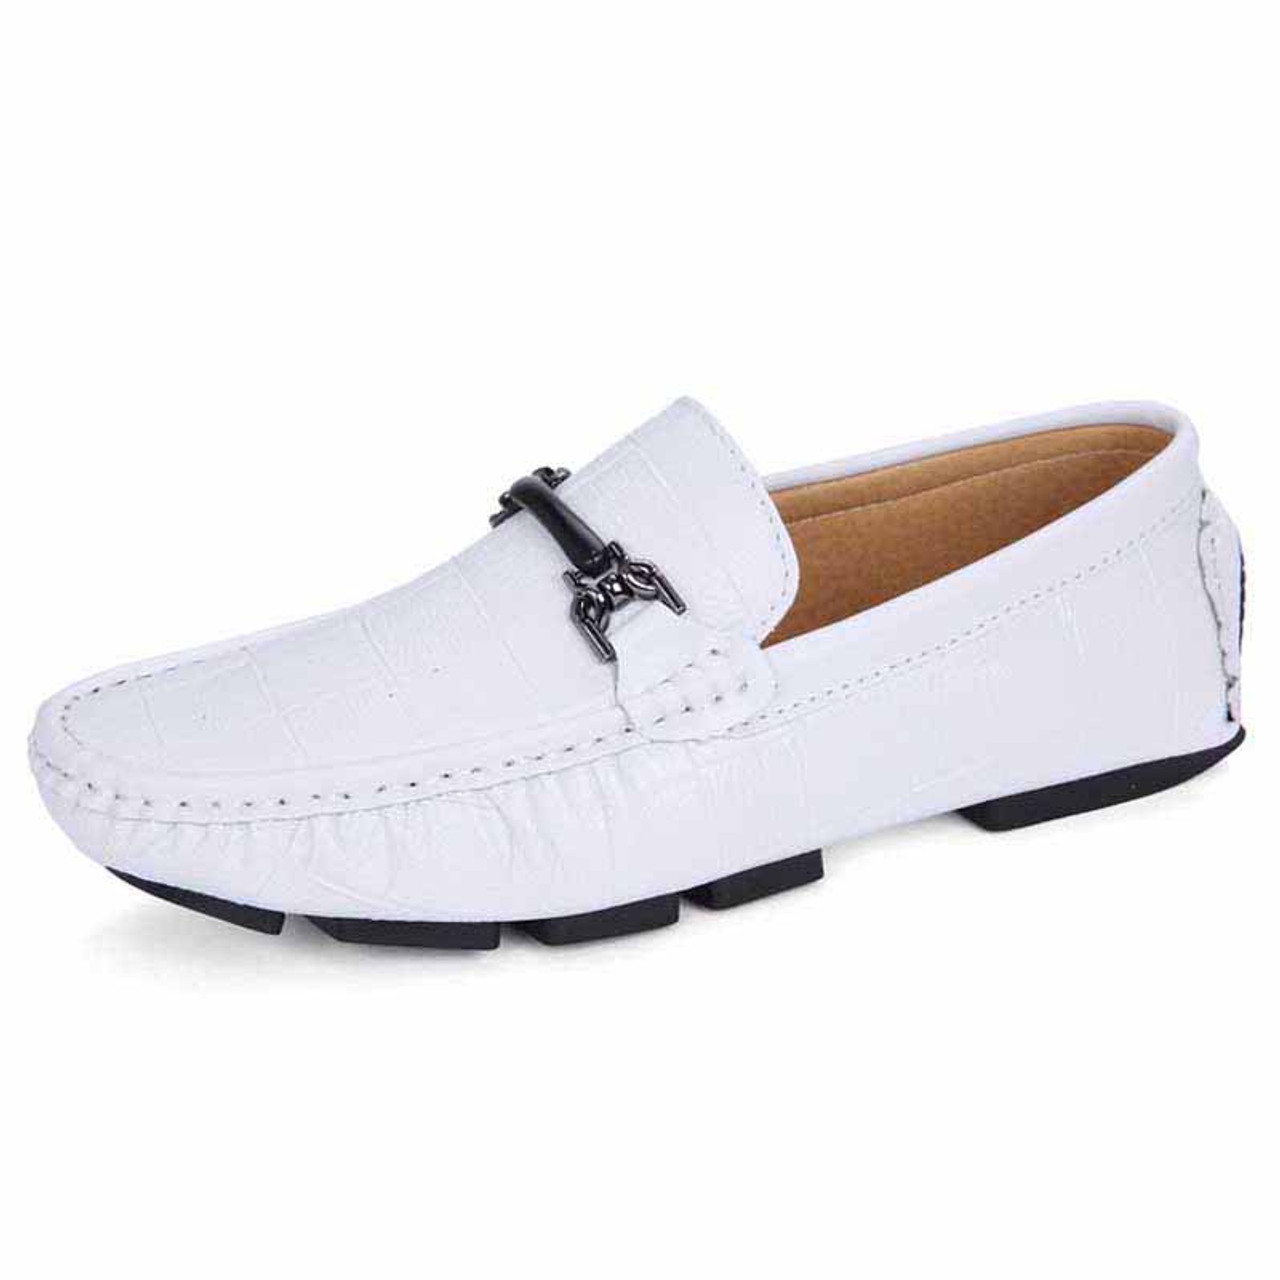 e6993ba8f4e01 White check buckle leather slip on shoe loafer 1406